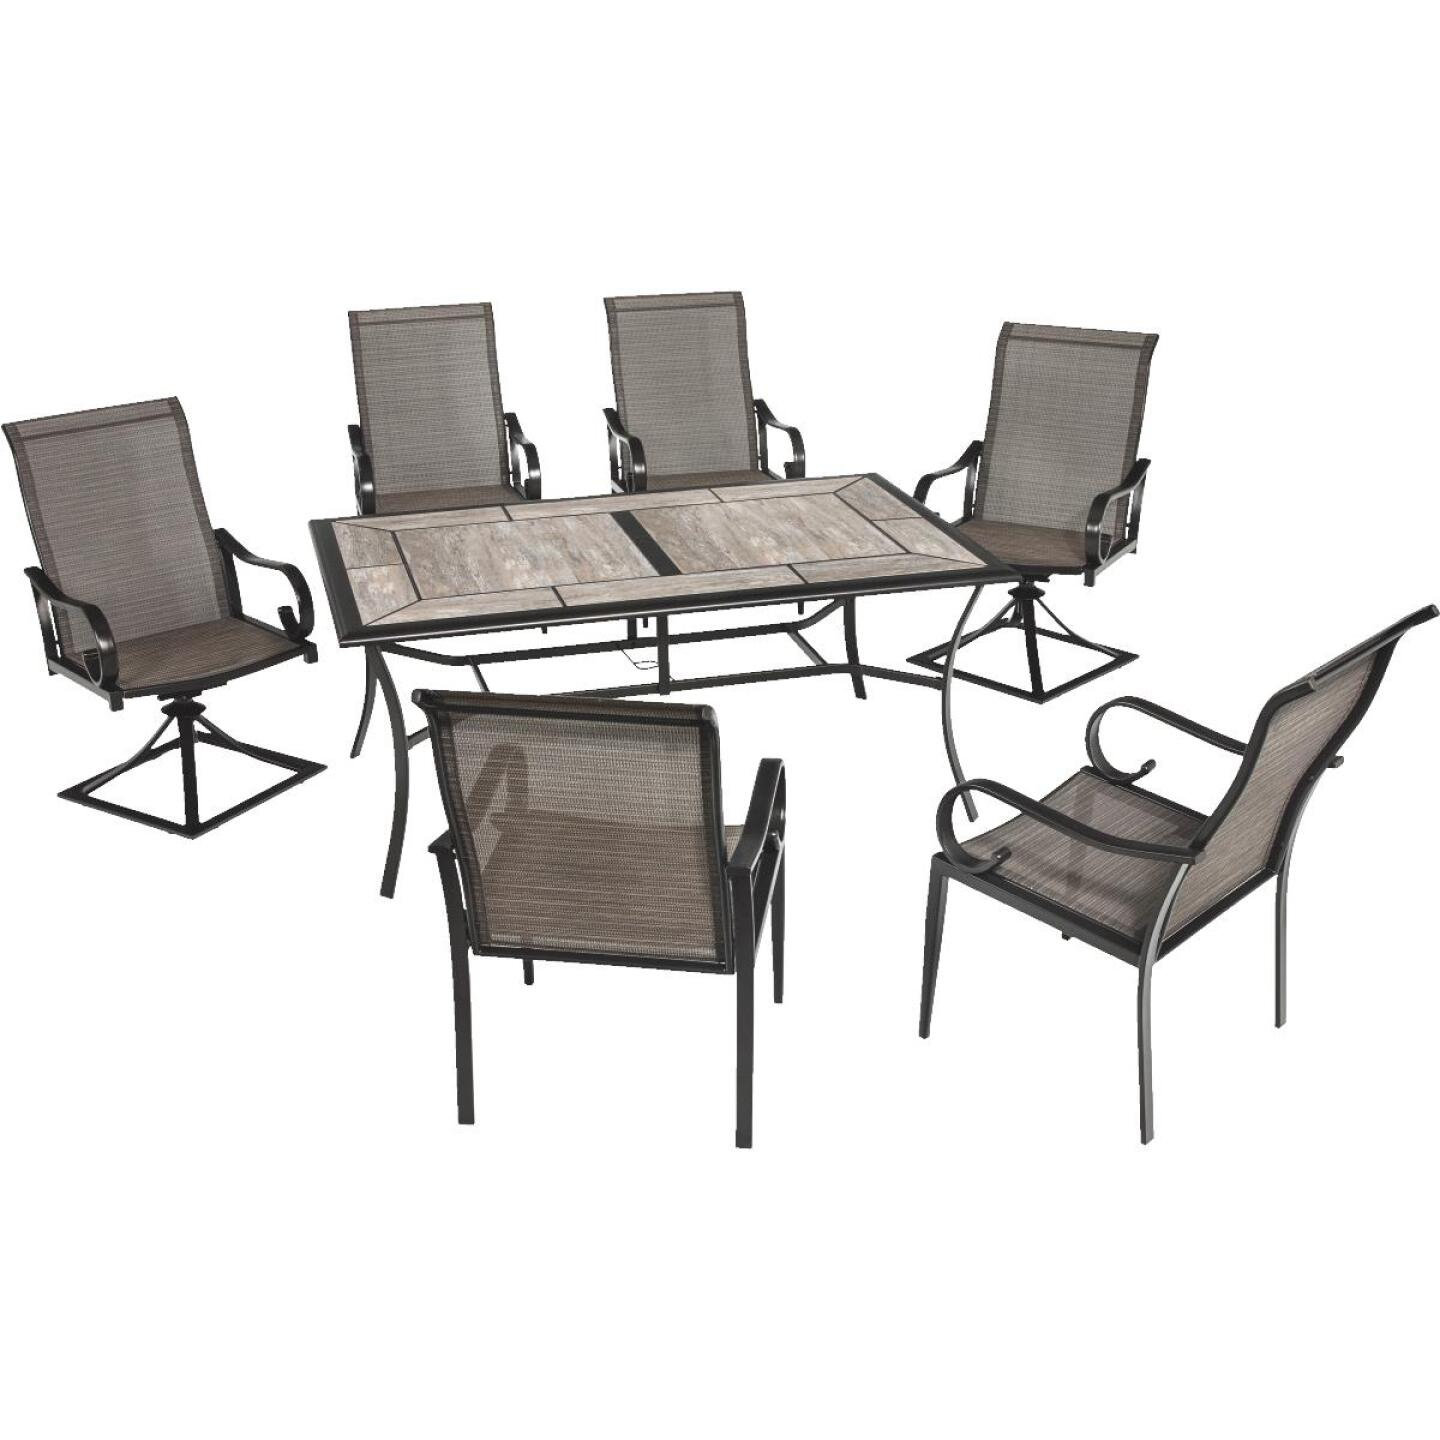 Outdoor Expressions Berkshire 7-Piece Dining Set Image 251